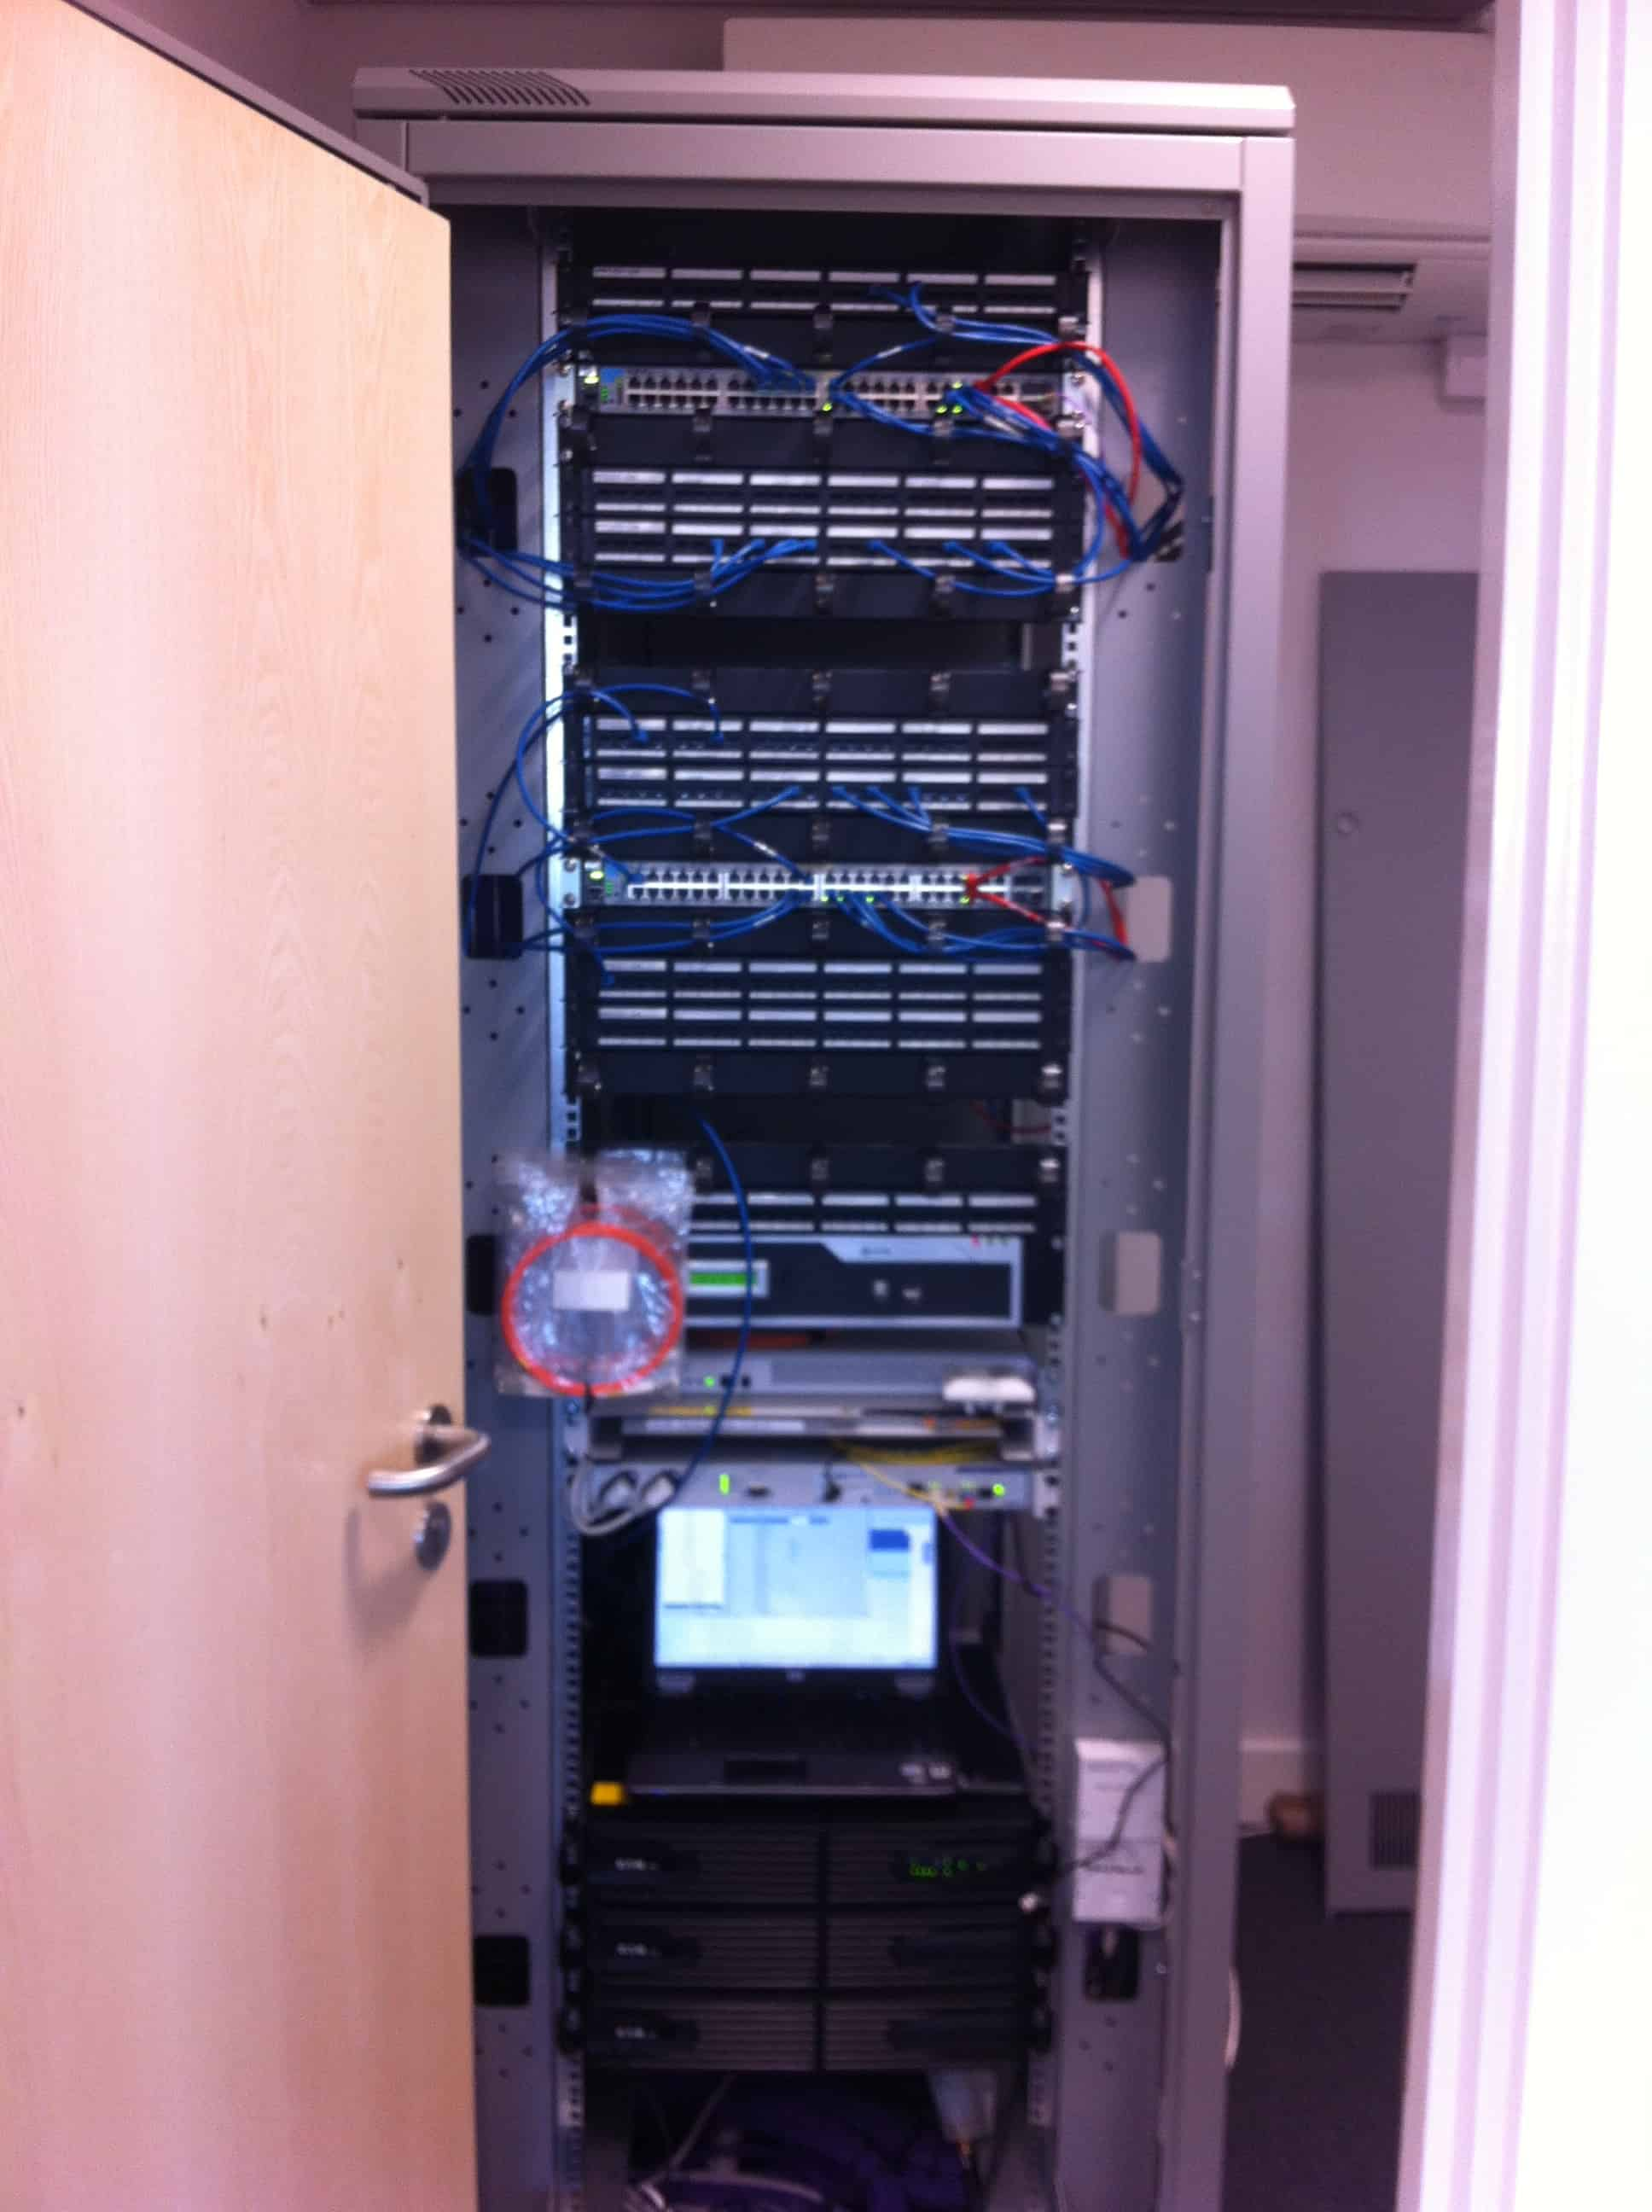 hight resolution of structured cabling comms cabinet example structured cabling comms cabinet example